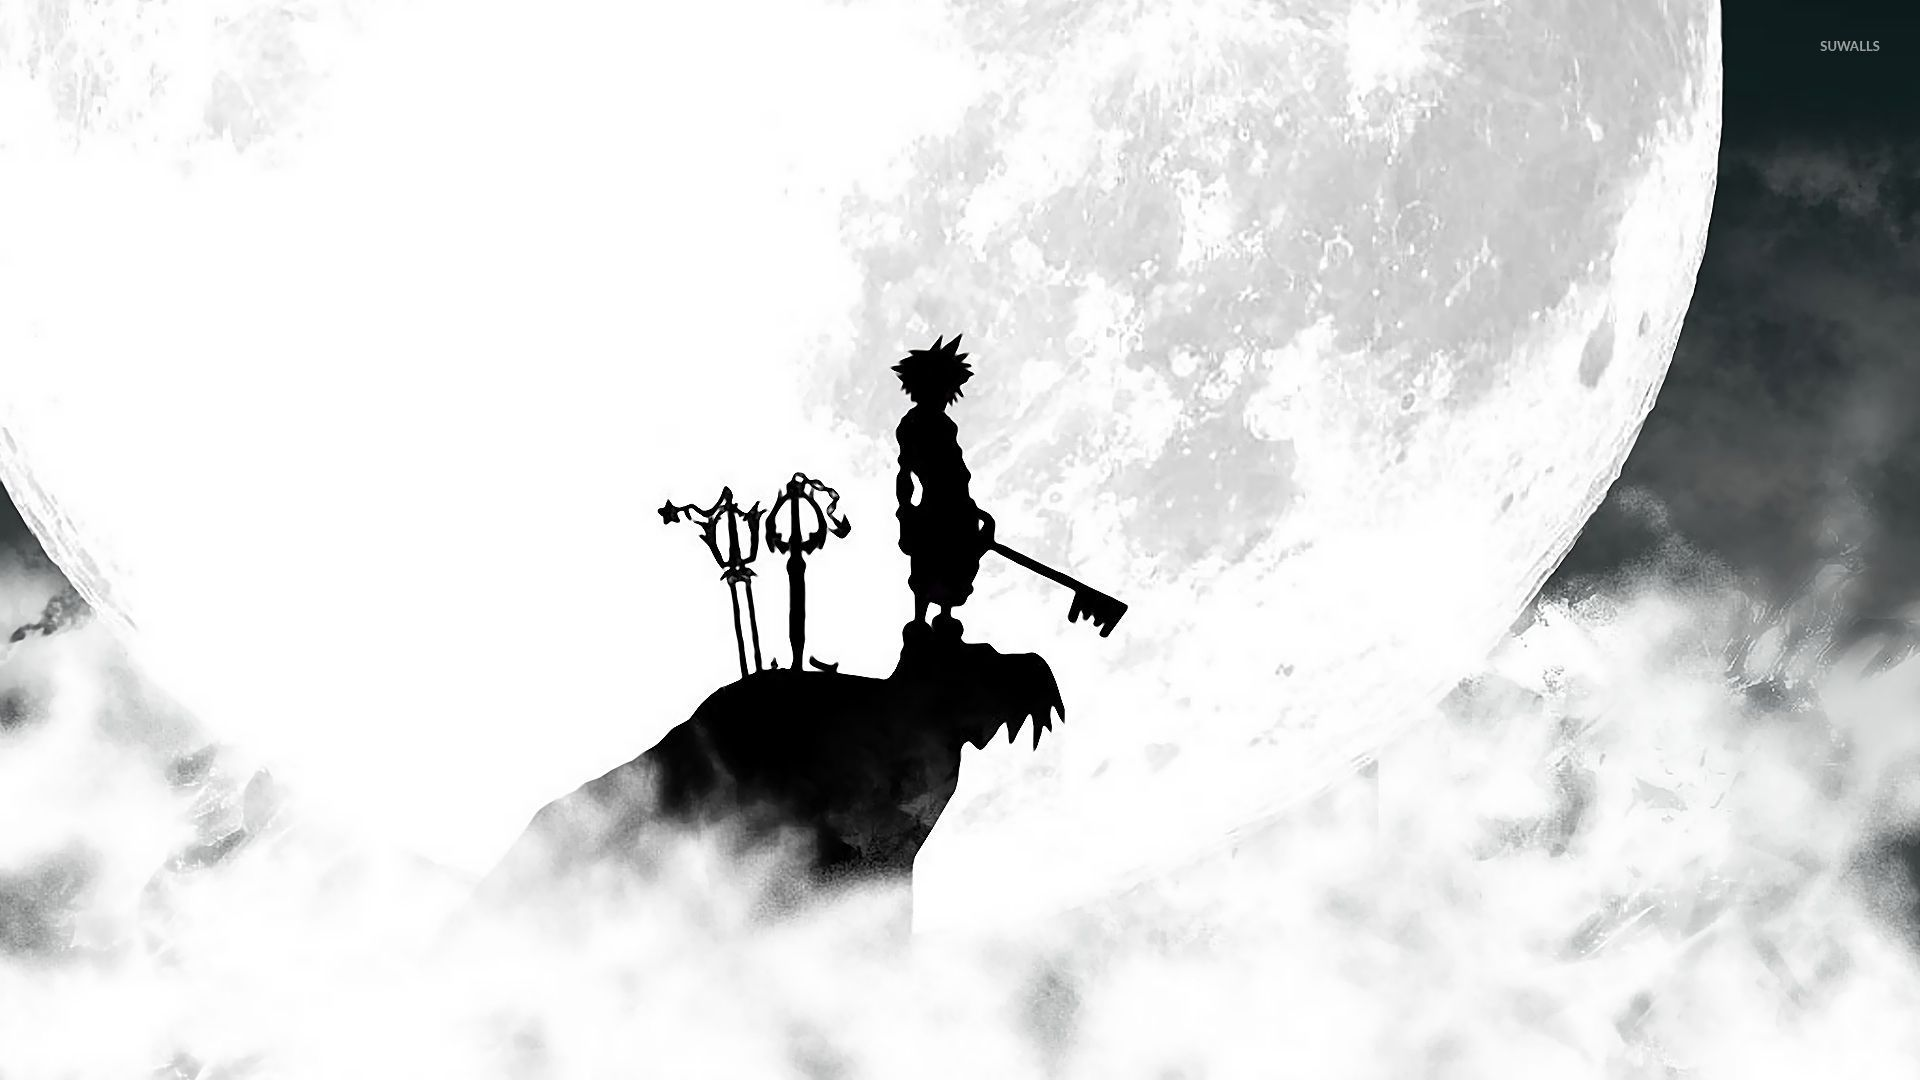 Kingdom Hearts 3 Warrior On The Cliff Wallpaper Game Wallpapers